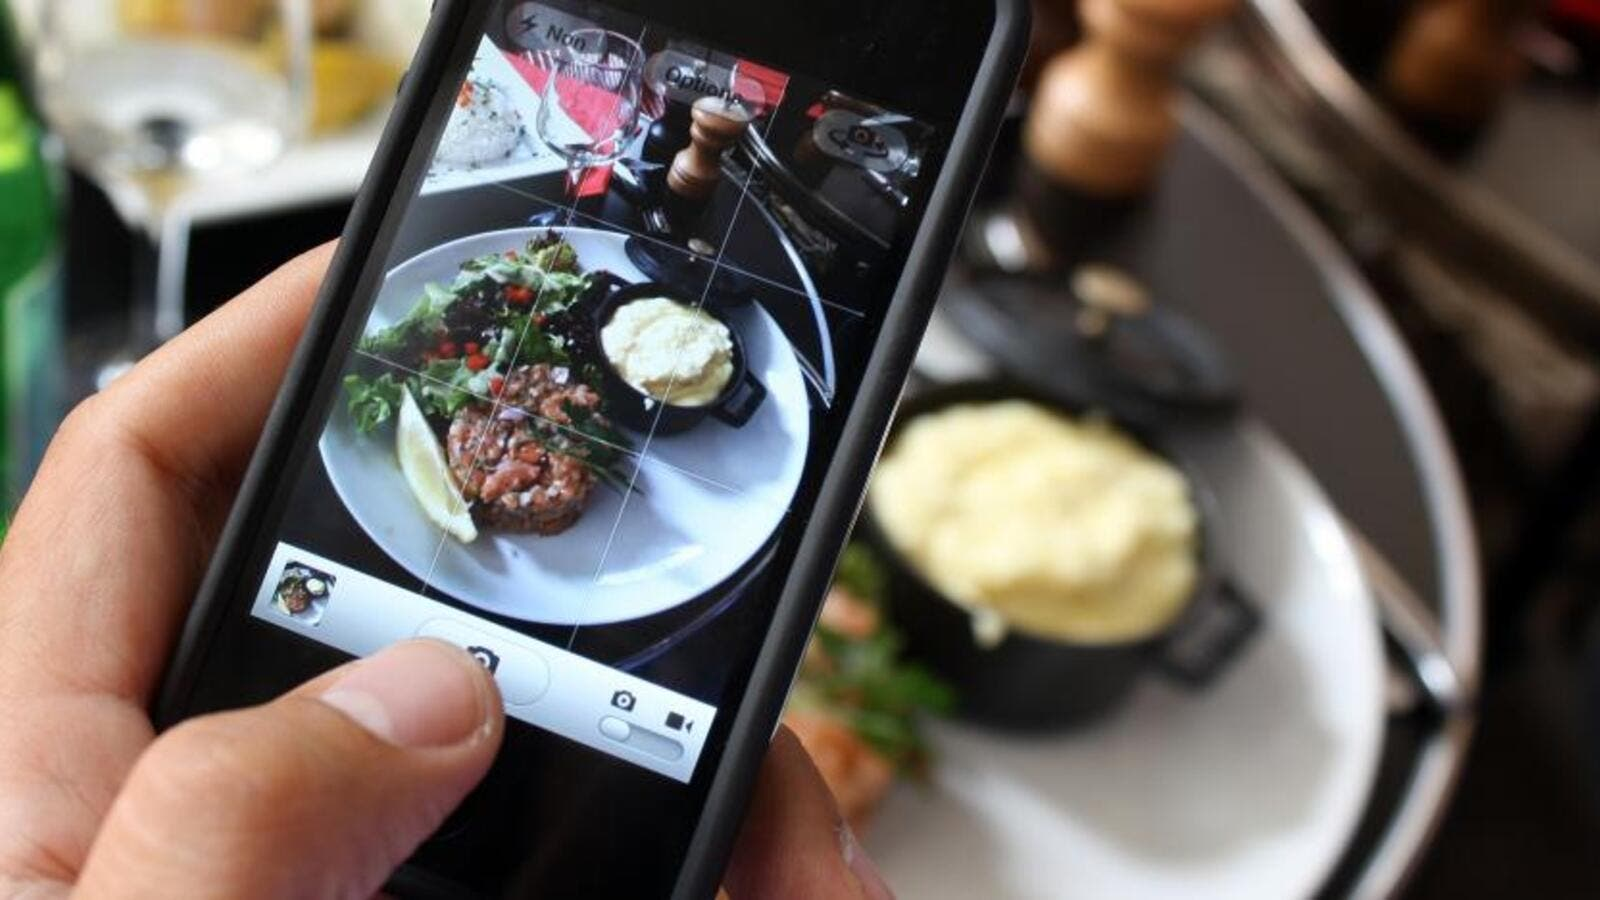 A man photographs his meal with a cell phone. Photograph by Ana Arevalo. AFP